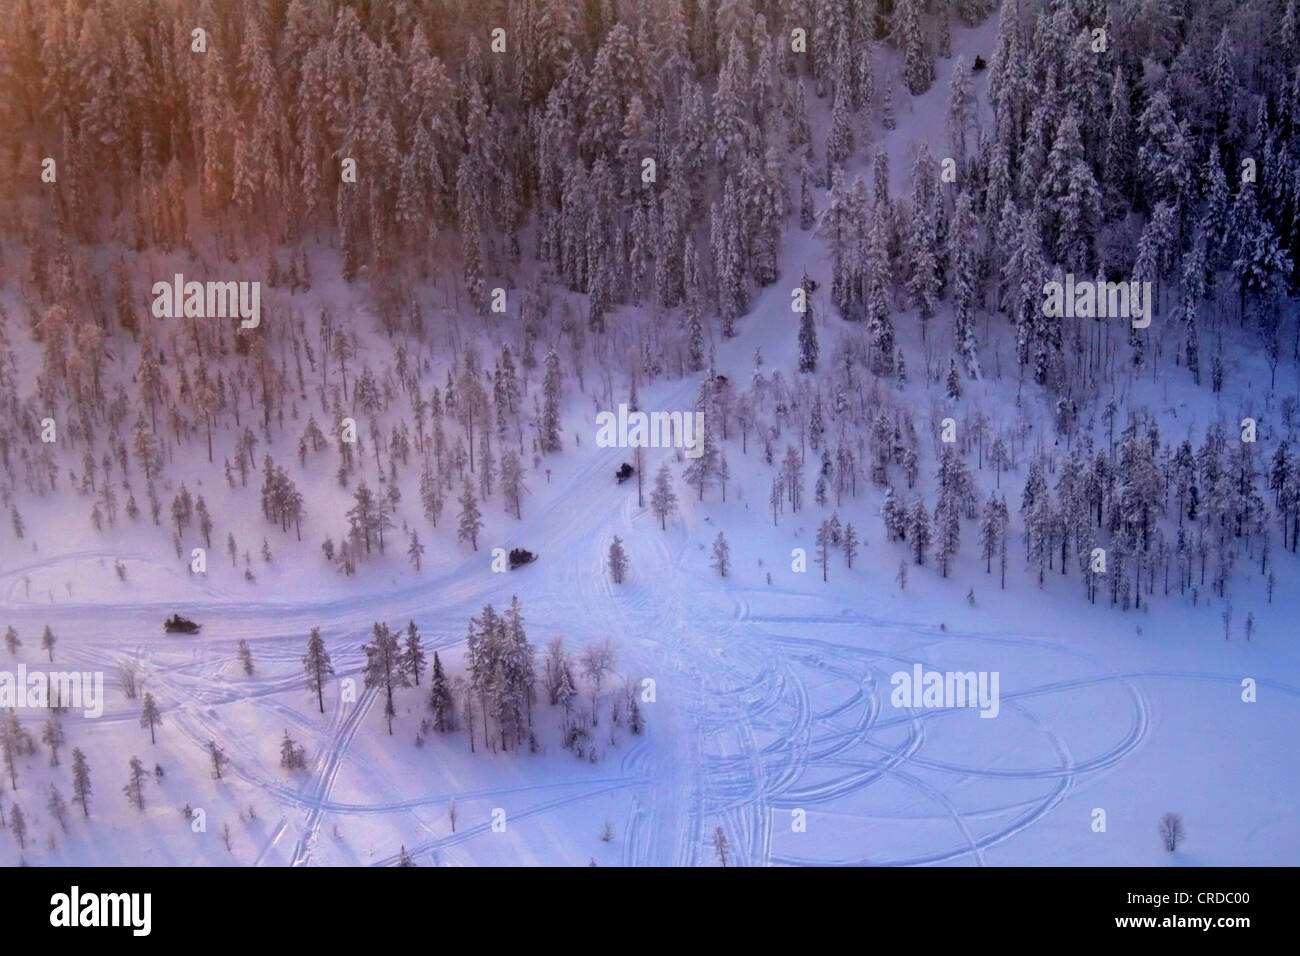 Snowmobile safari photographed from air, Finland, Lapland, Kittilae - Stock Image